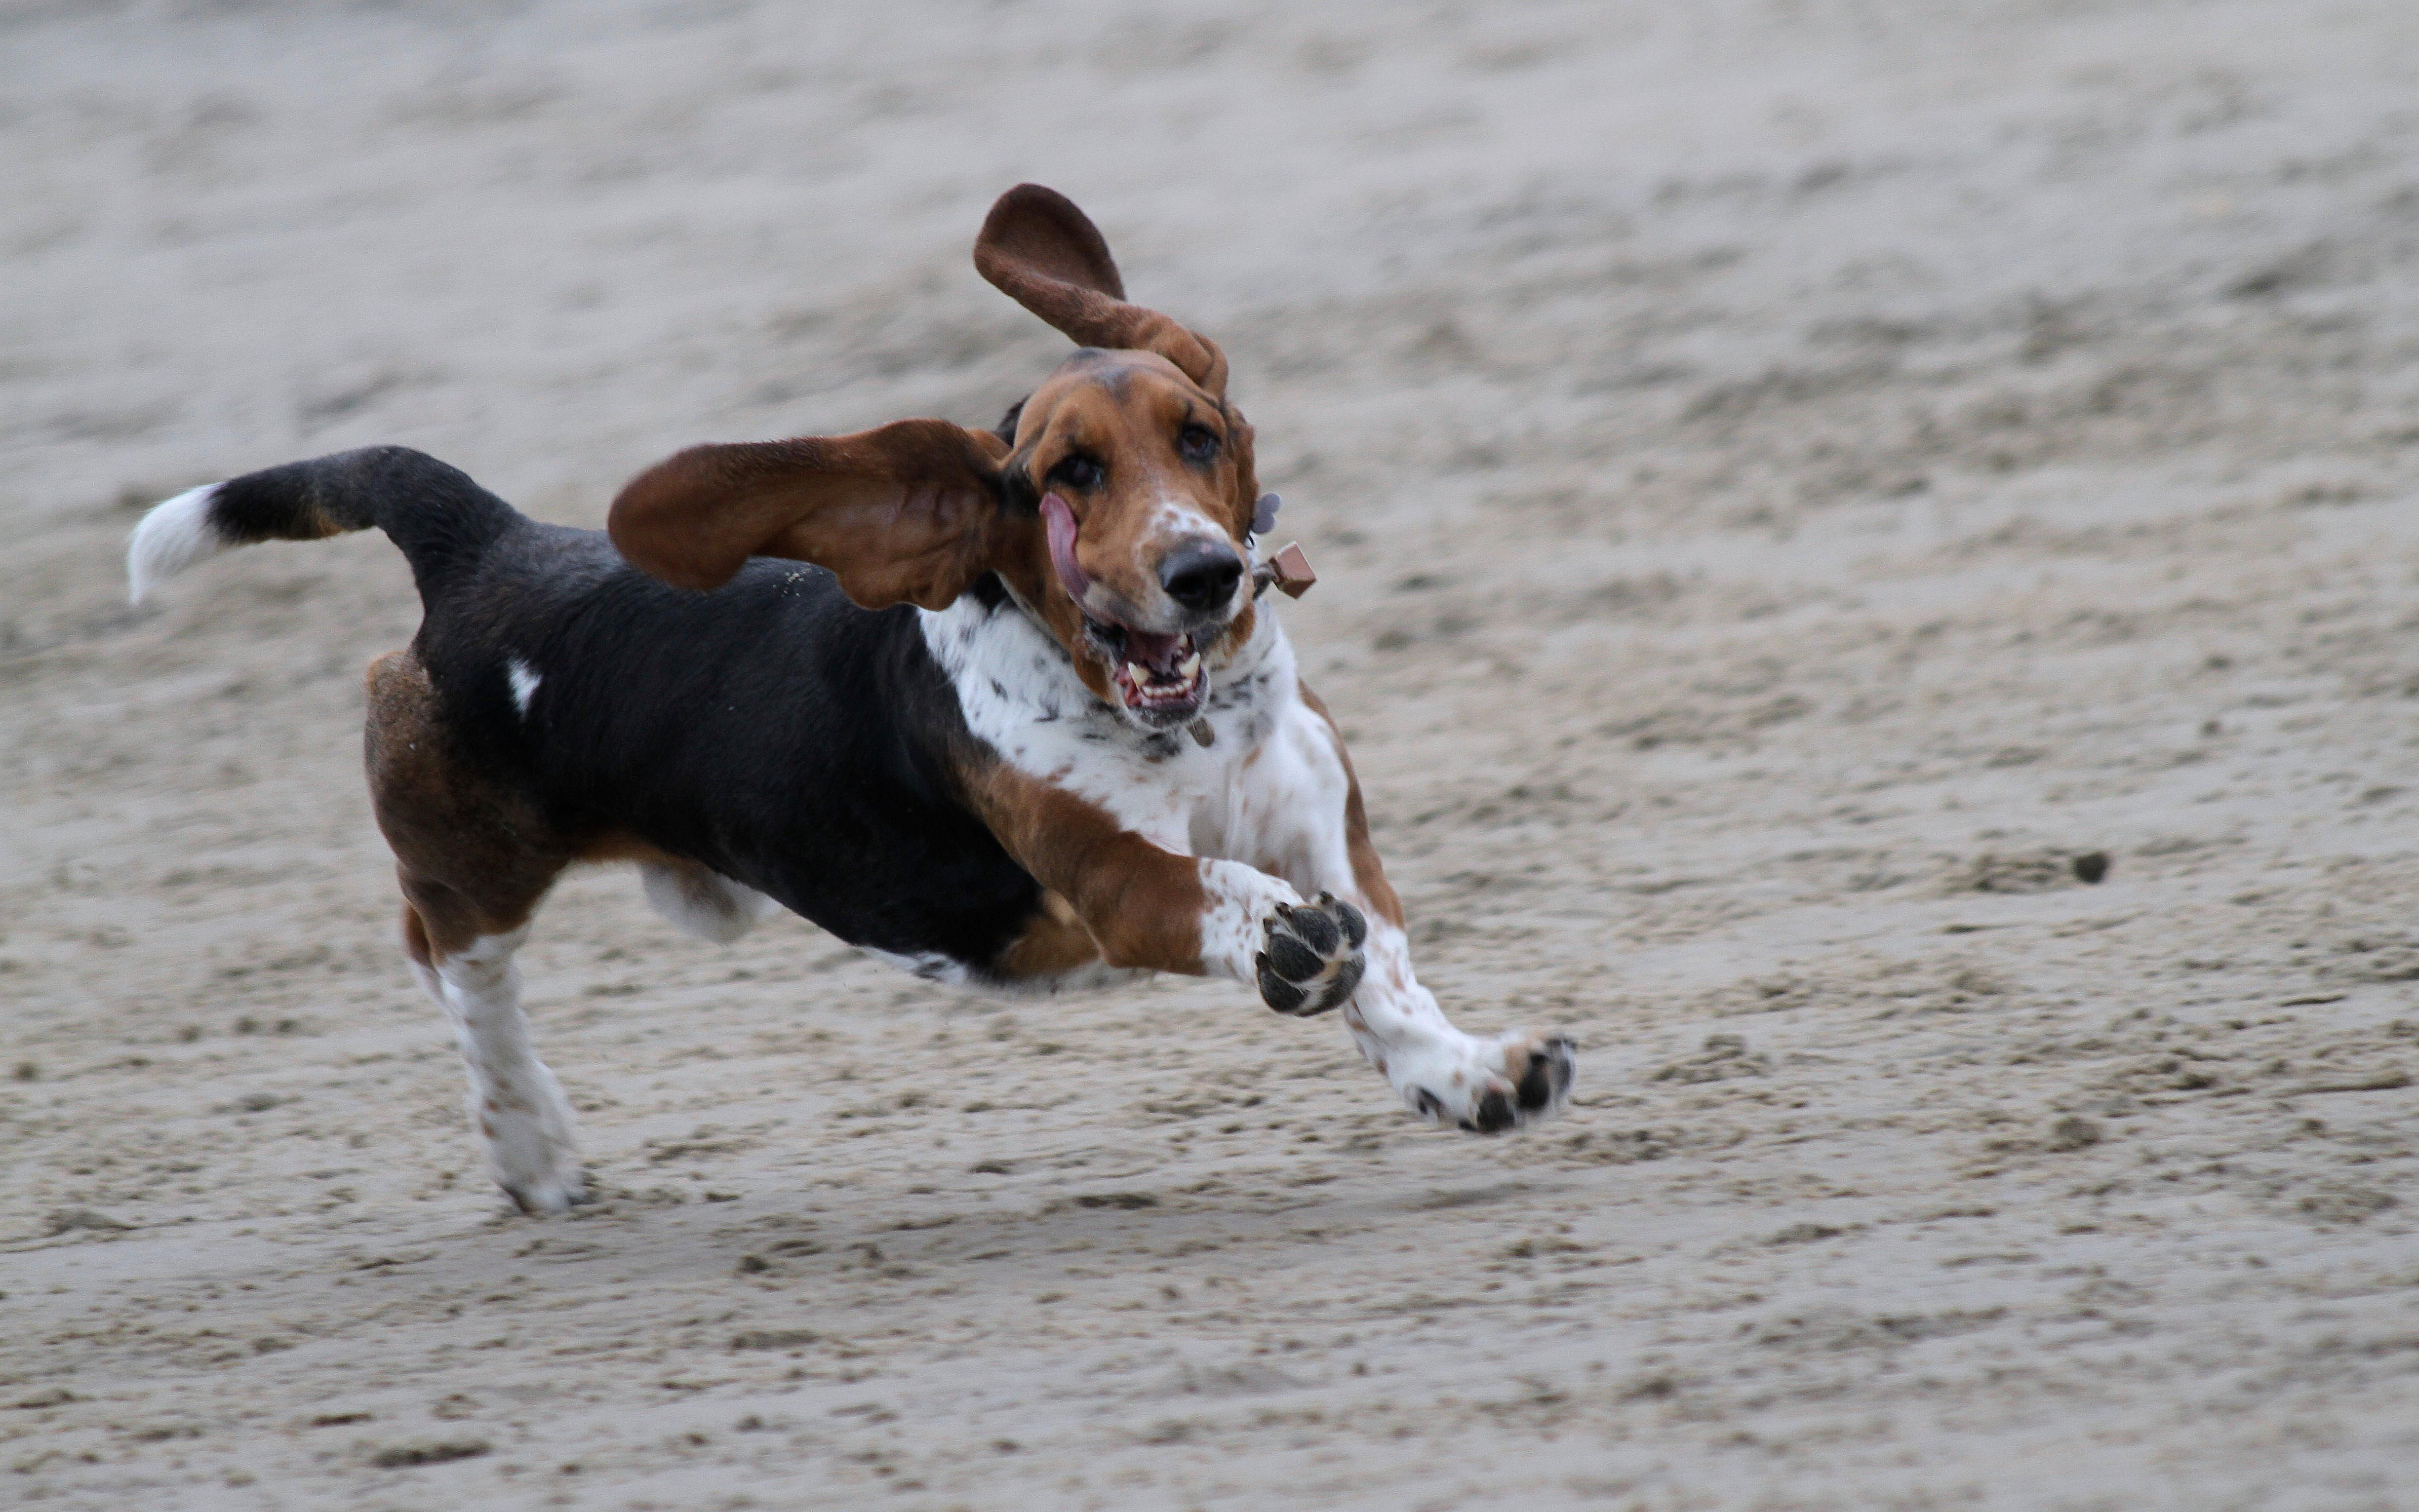 Running dog with bell on neck.